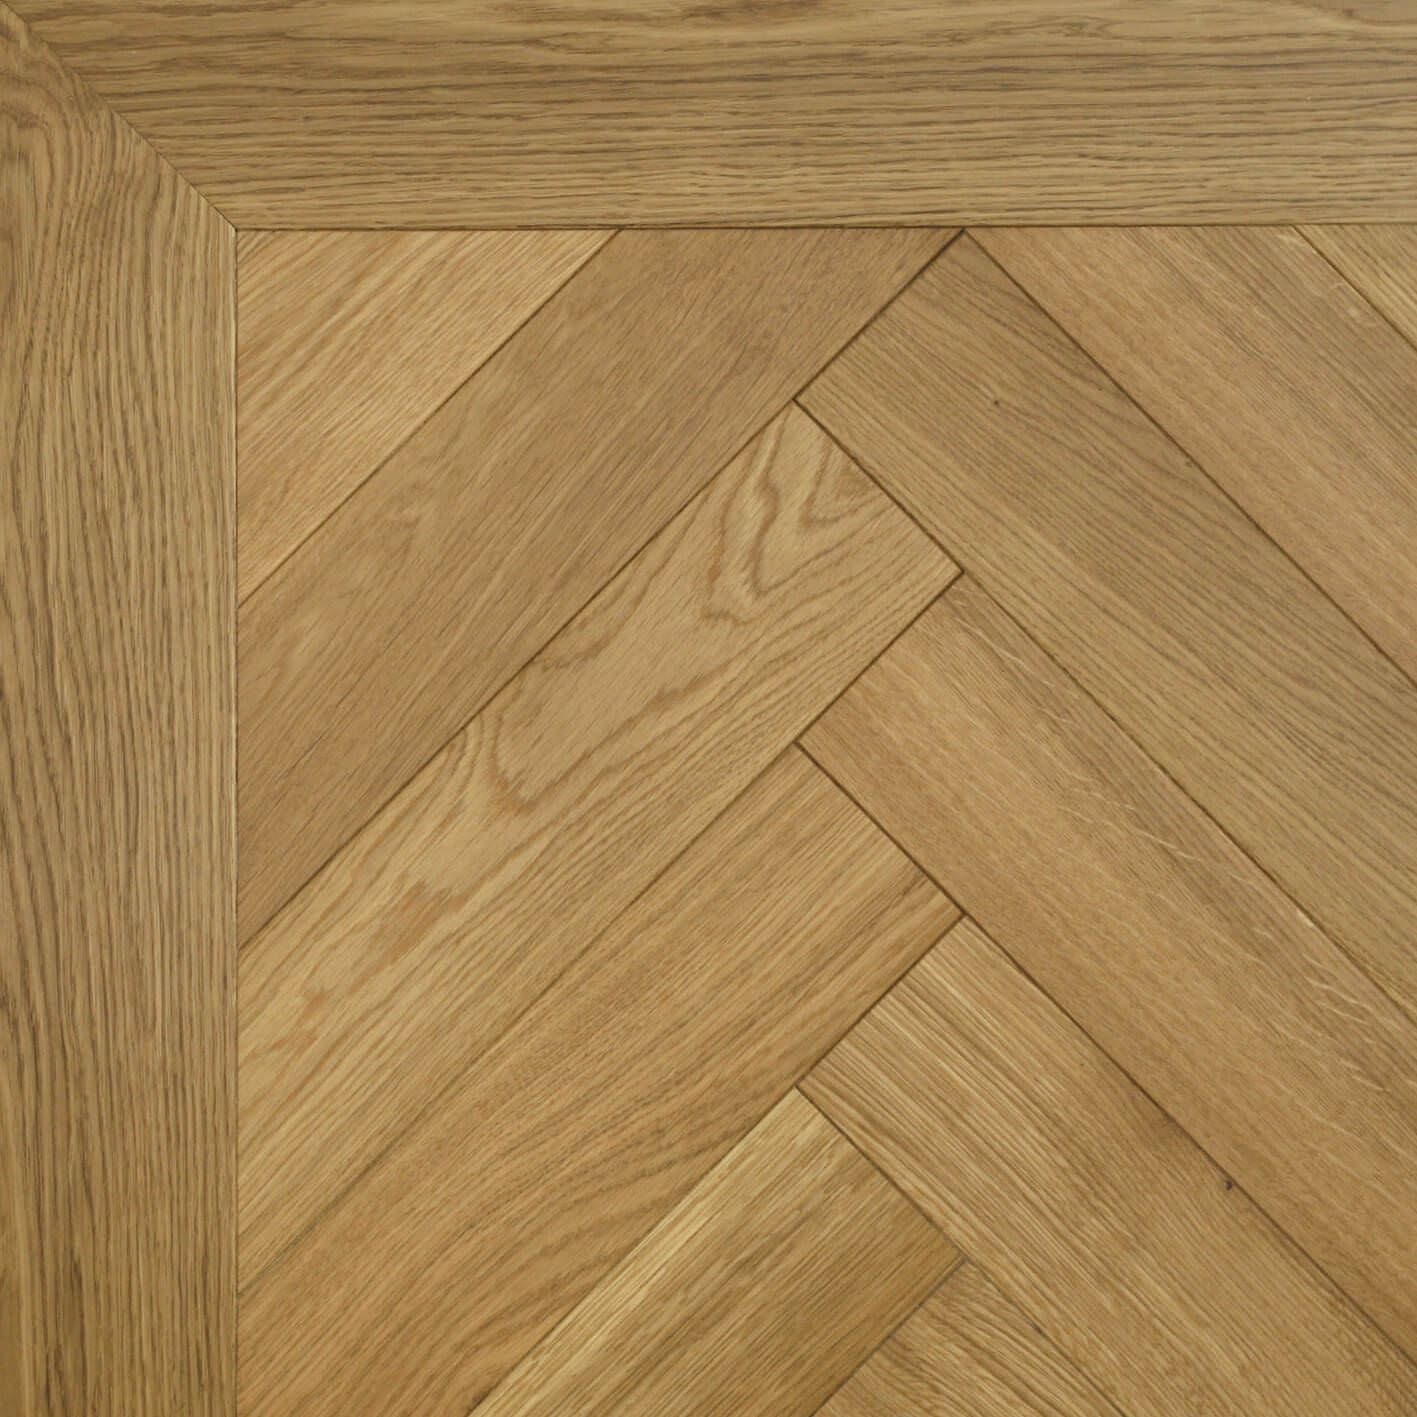 Euro Oak Prime Woodblocks Granger Flooring Brighton Amp Sussex